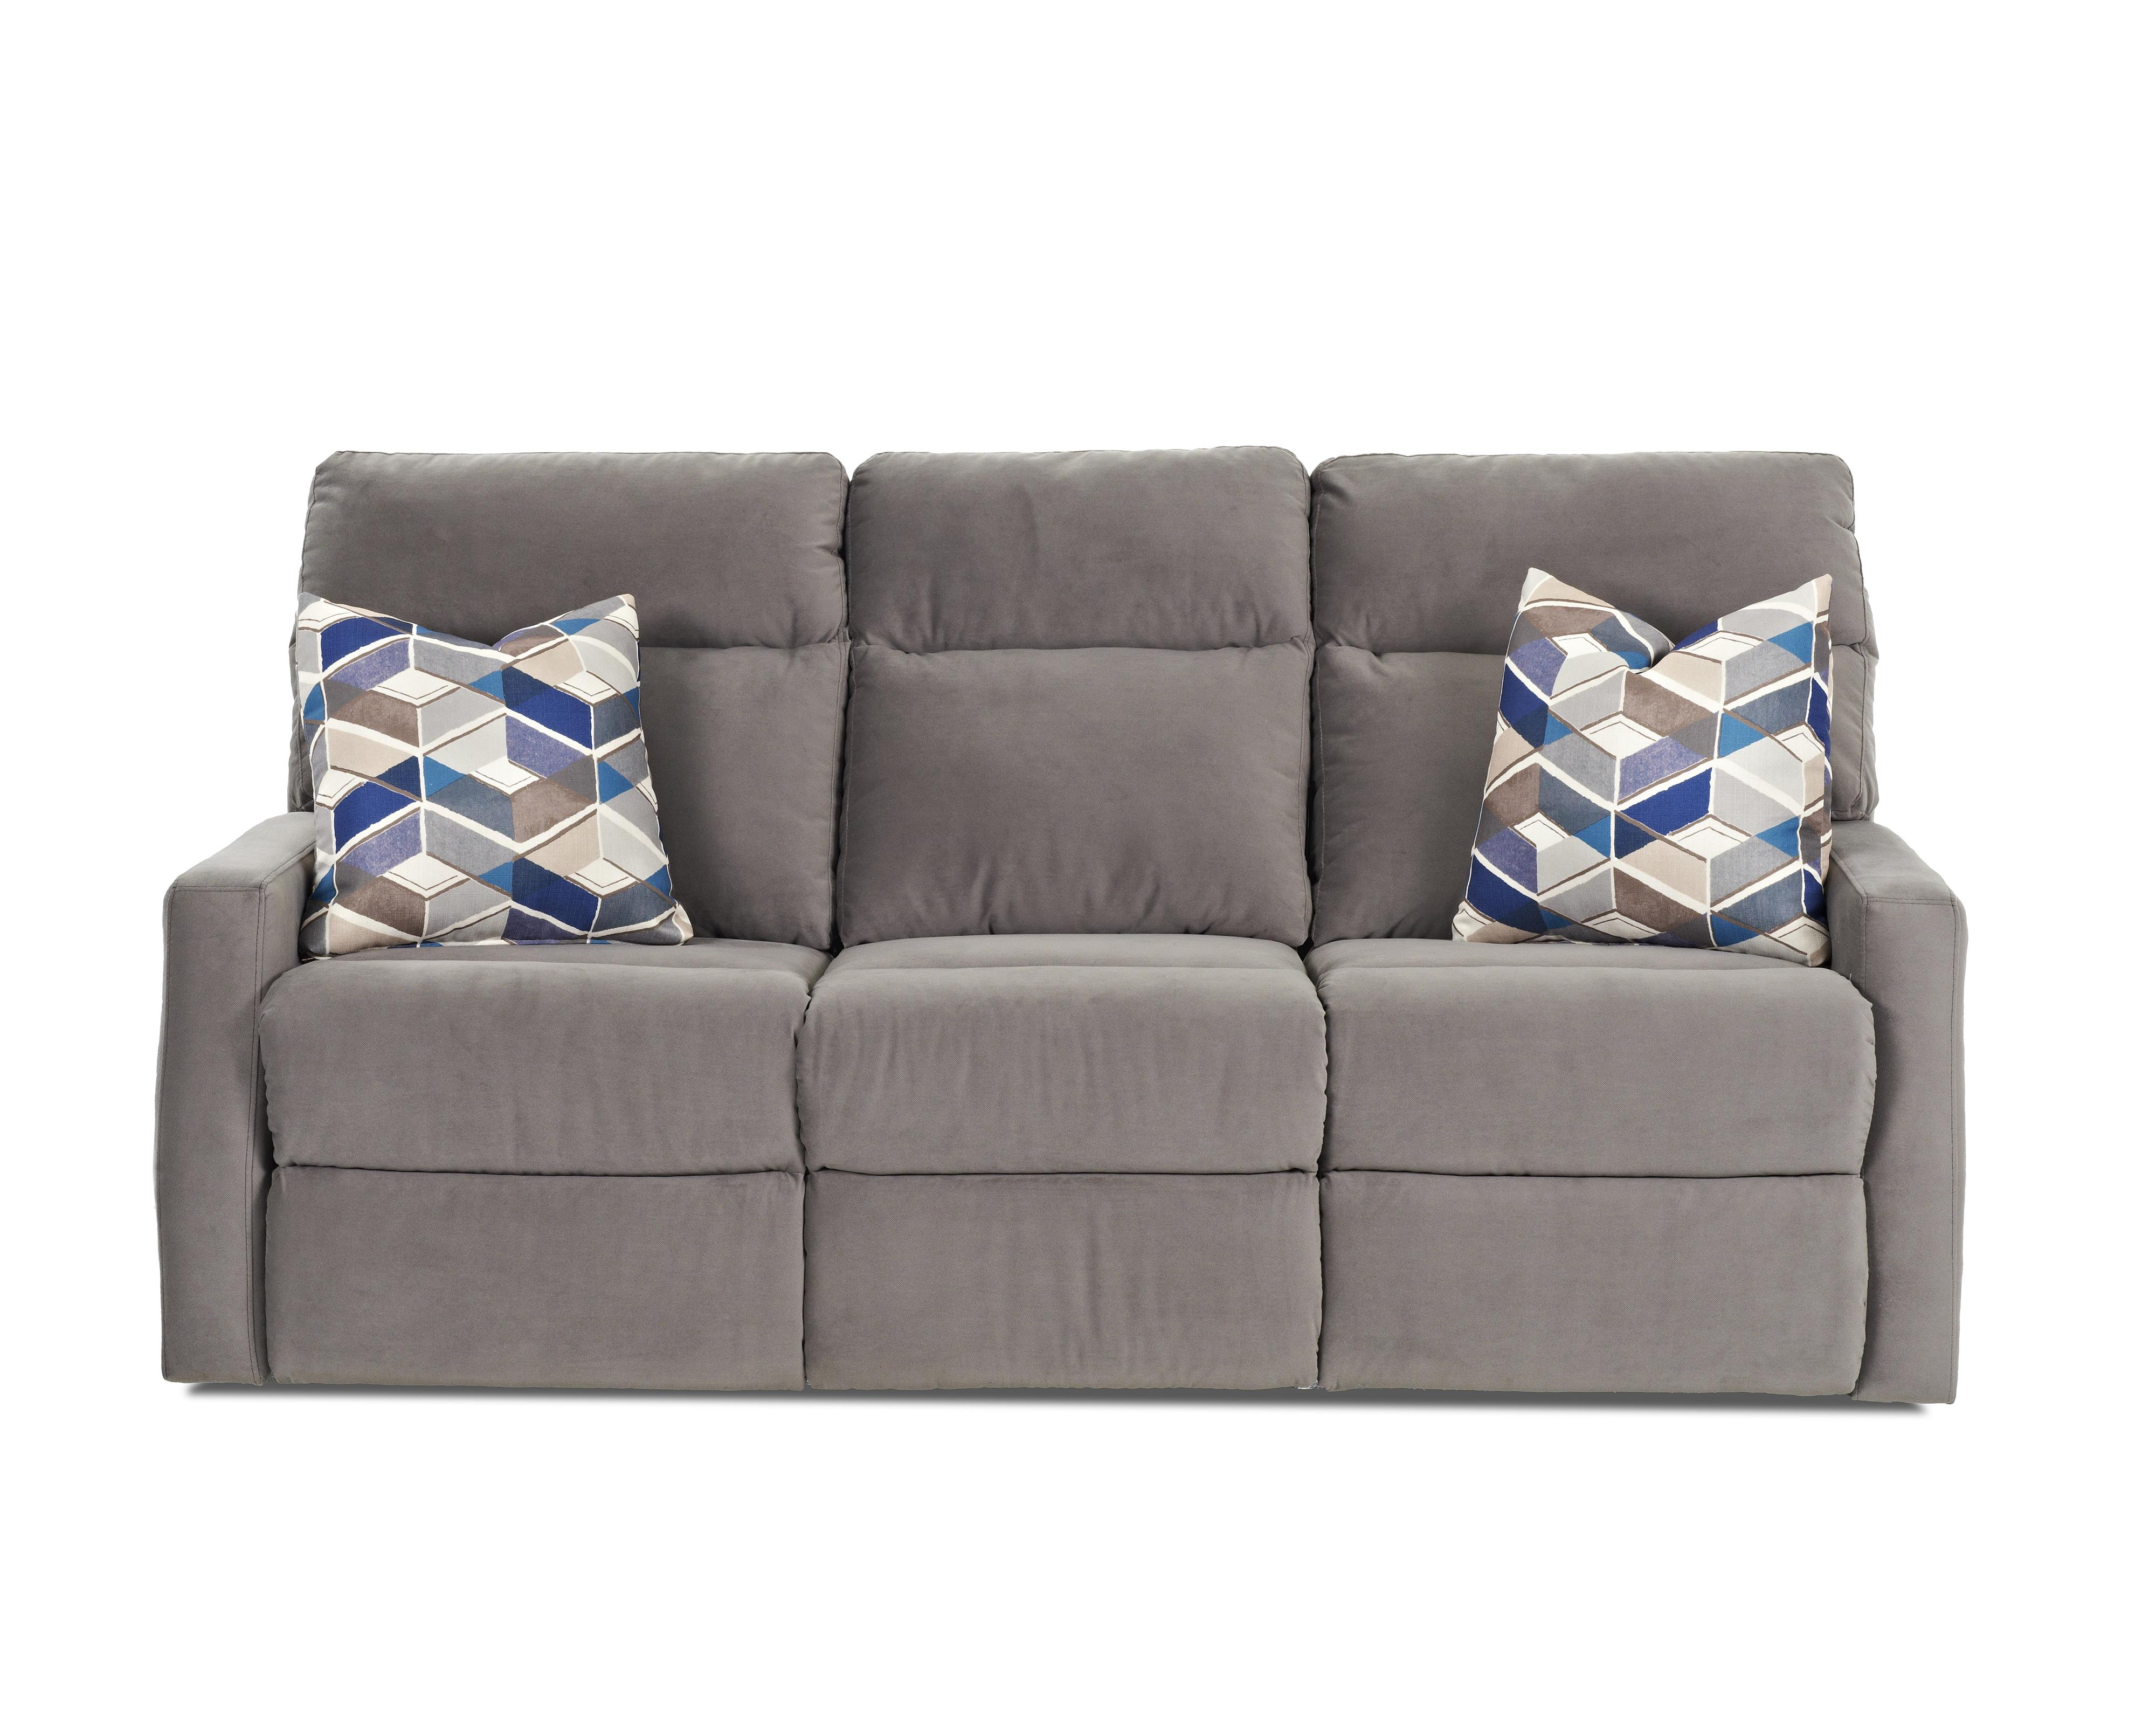 Power Reclining Sofa with Soft Track Arms and Pillows